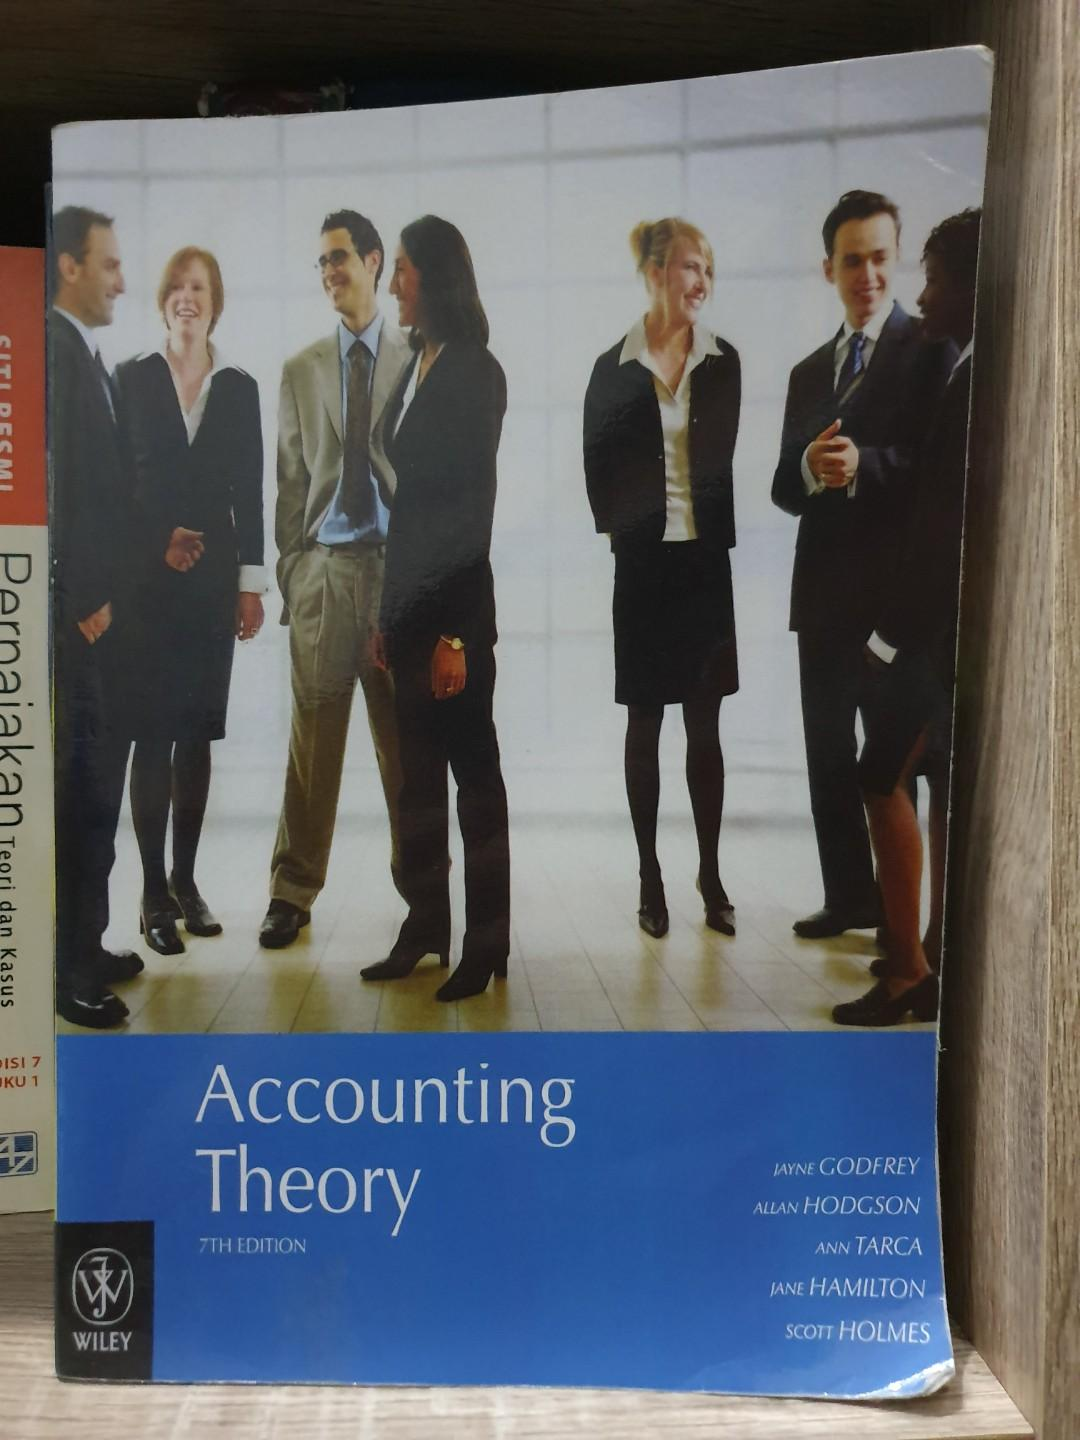 Accounting Theory 7th Edition